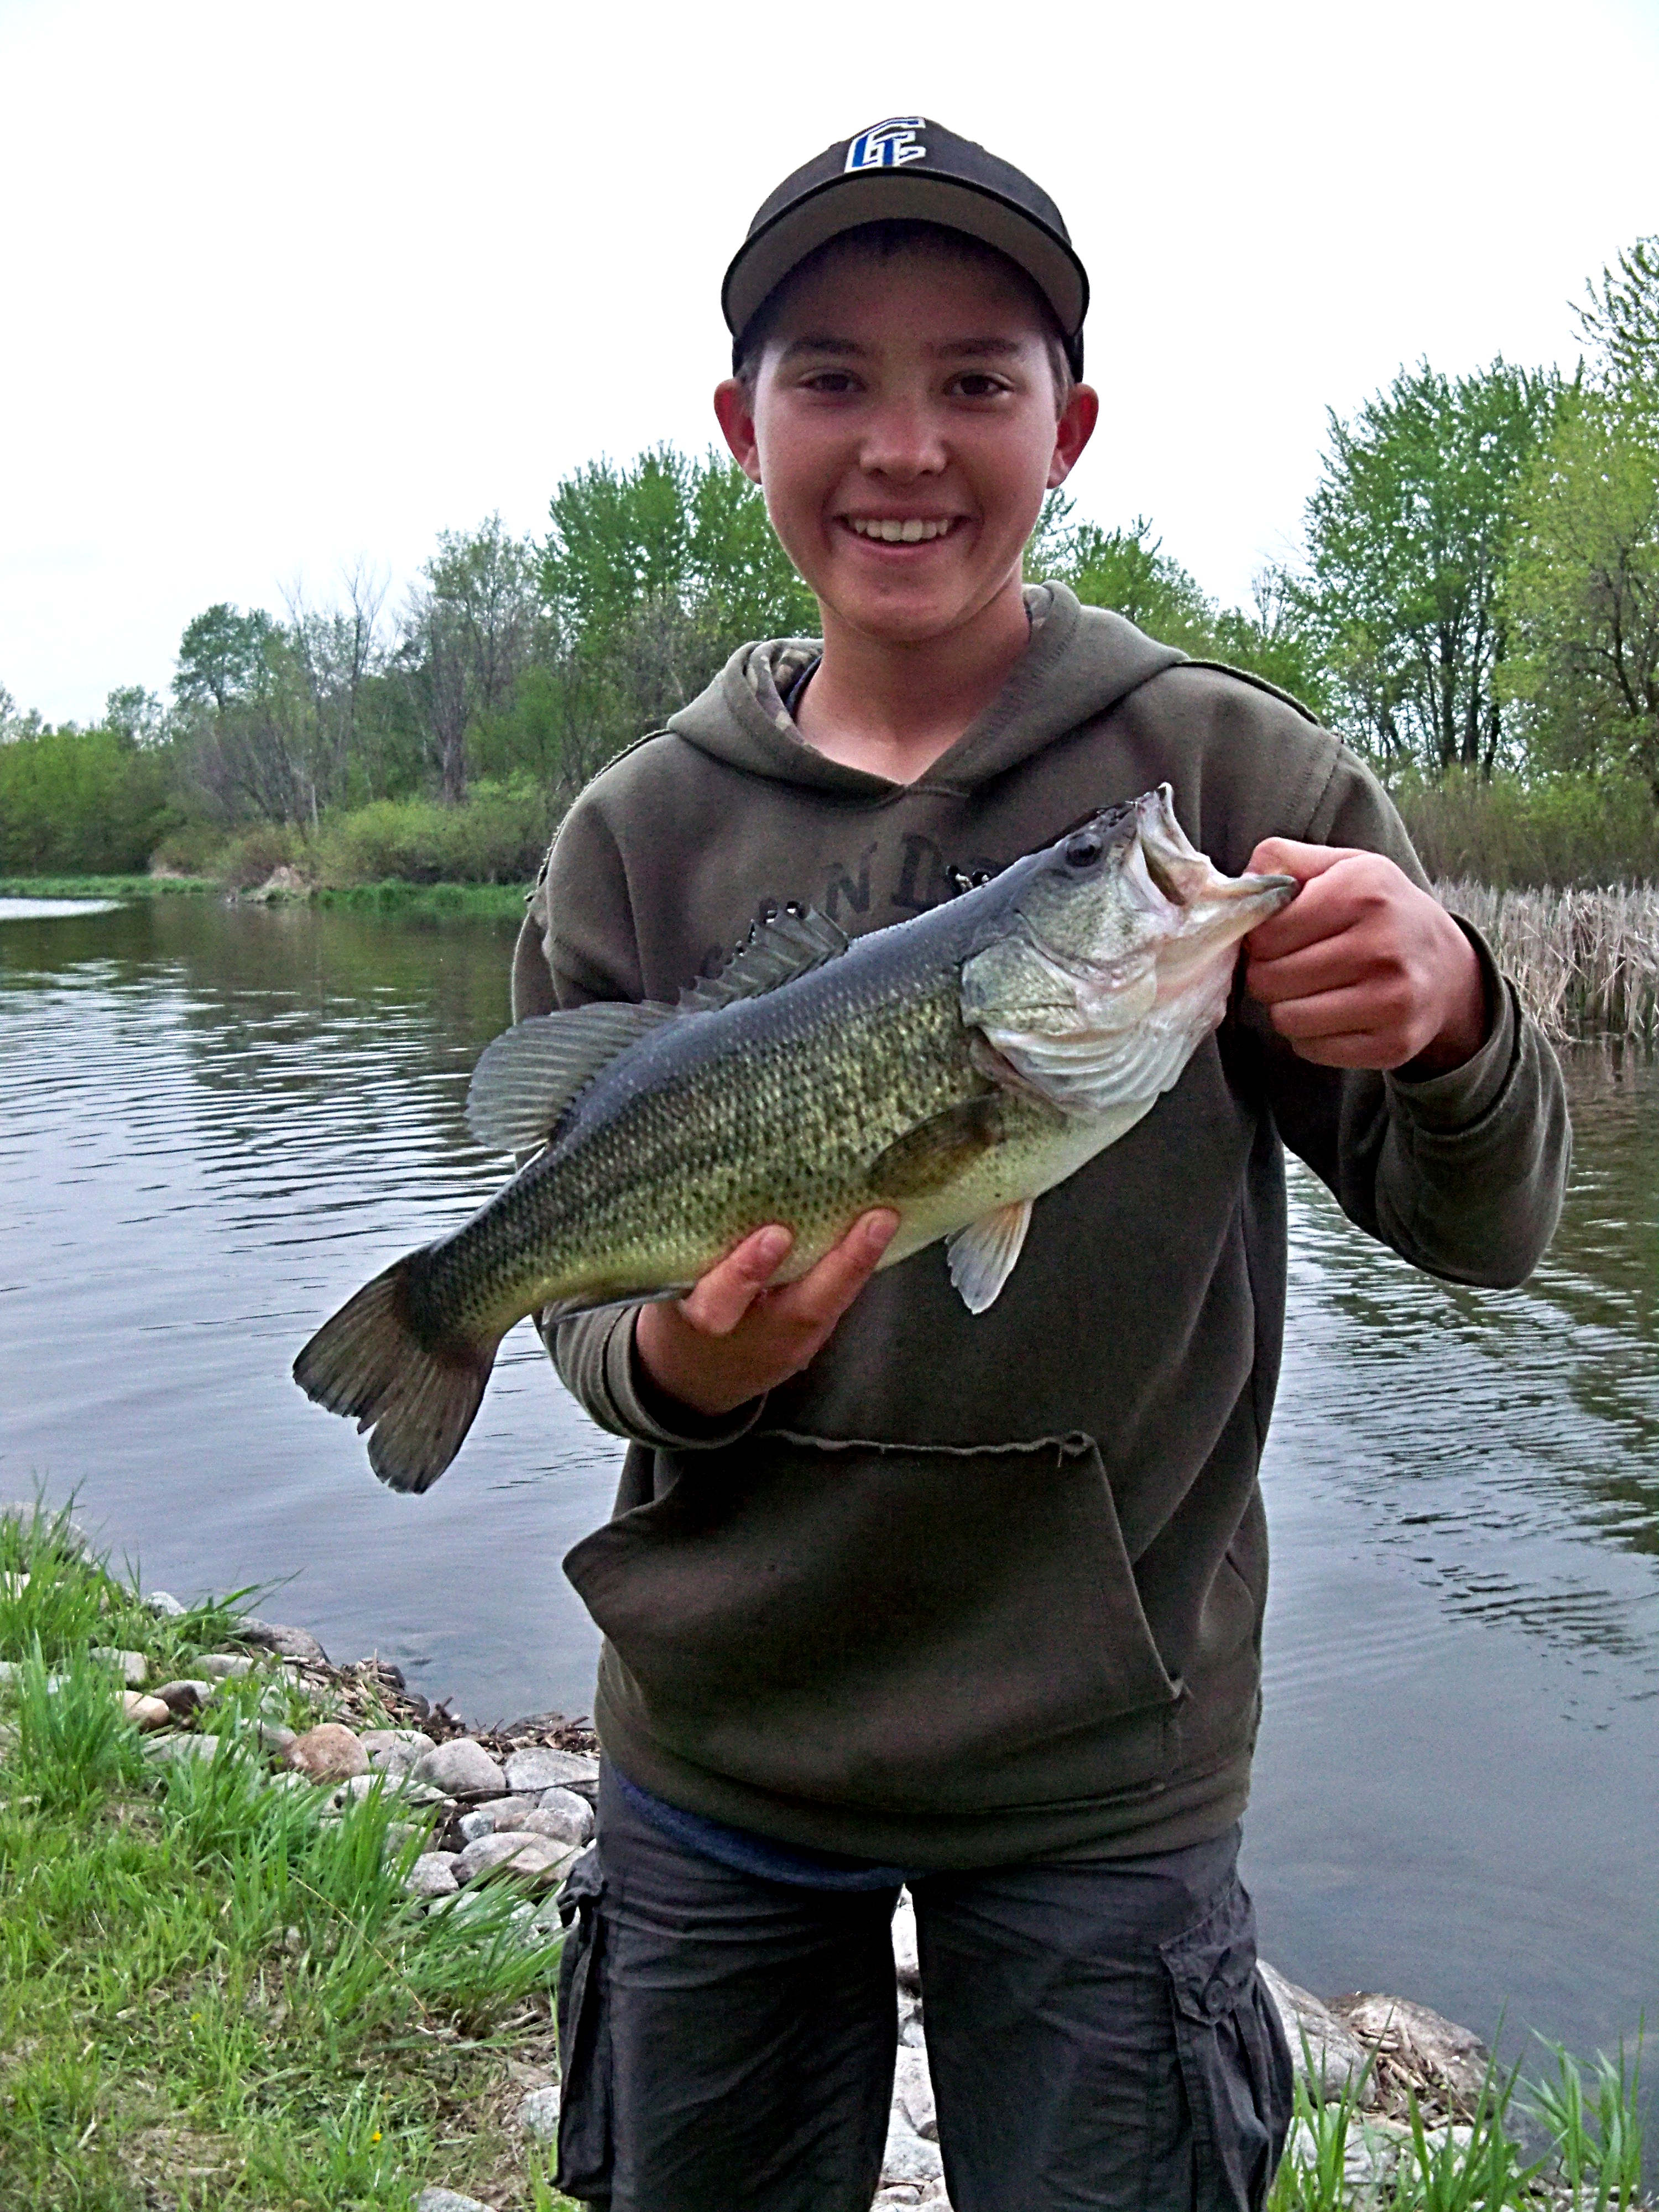 Braden's bass up at the lake